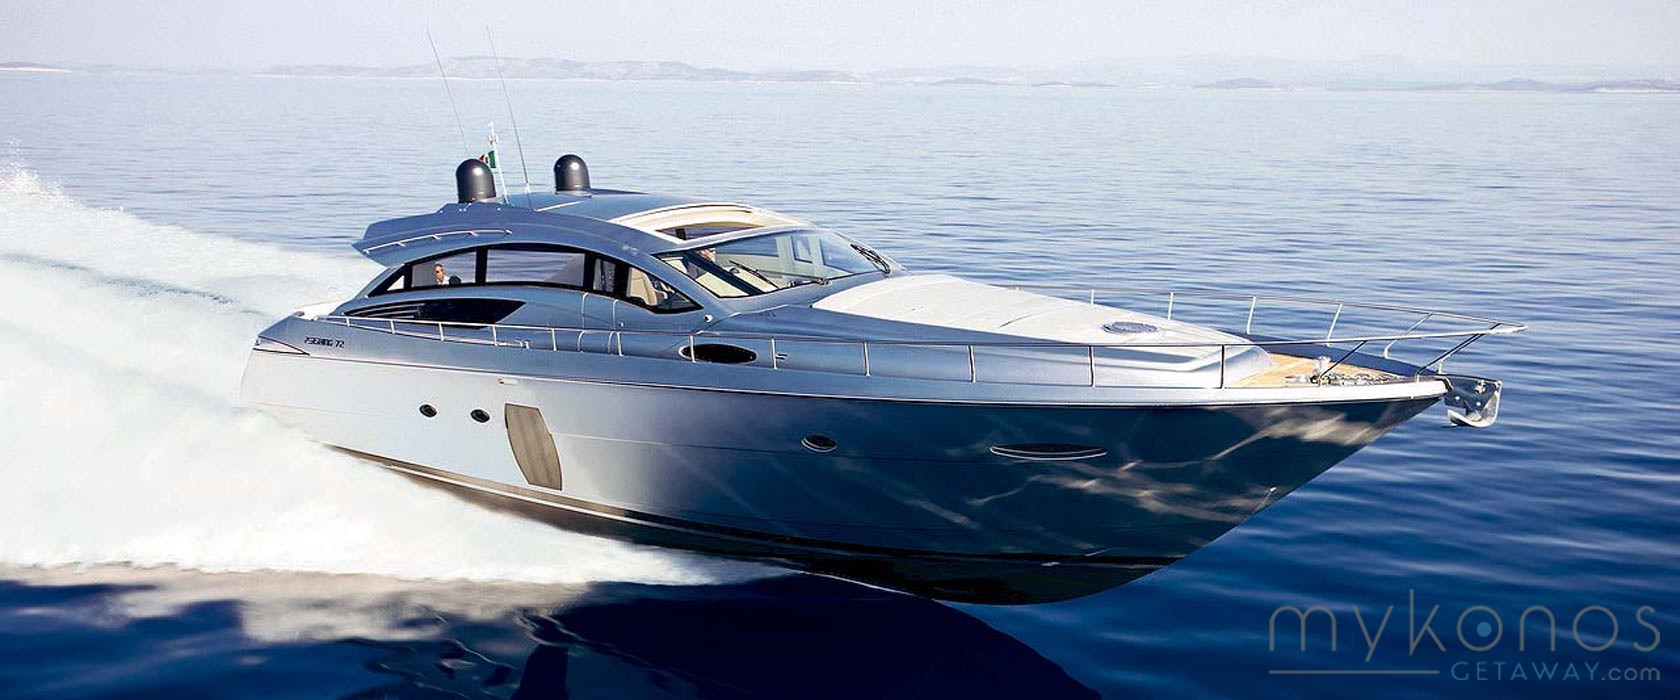 Mykonos Charter A Luxury Speed Boat Private Cruise Greek Islands